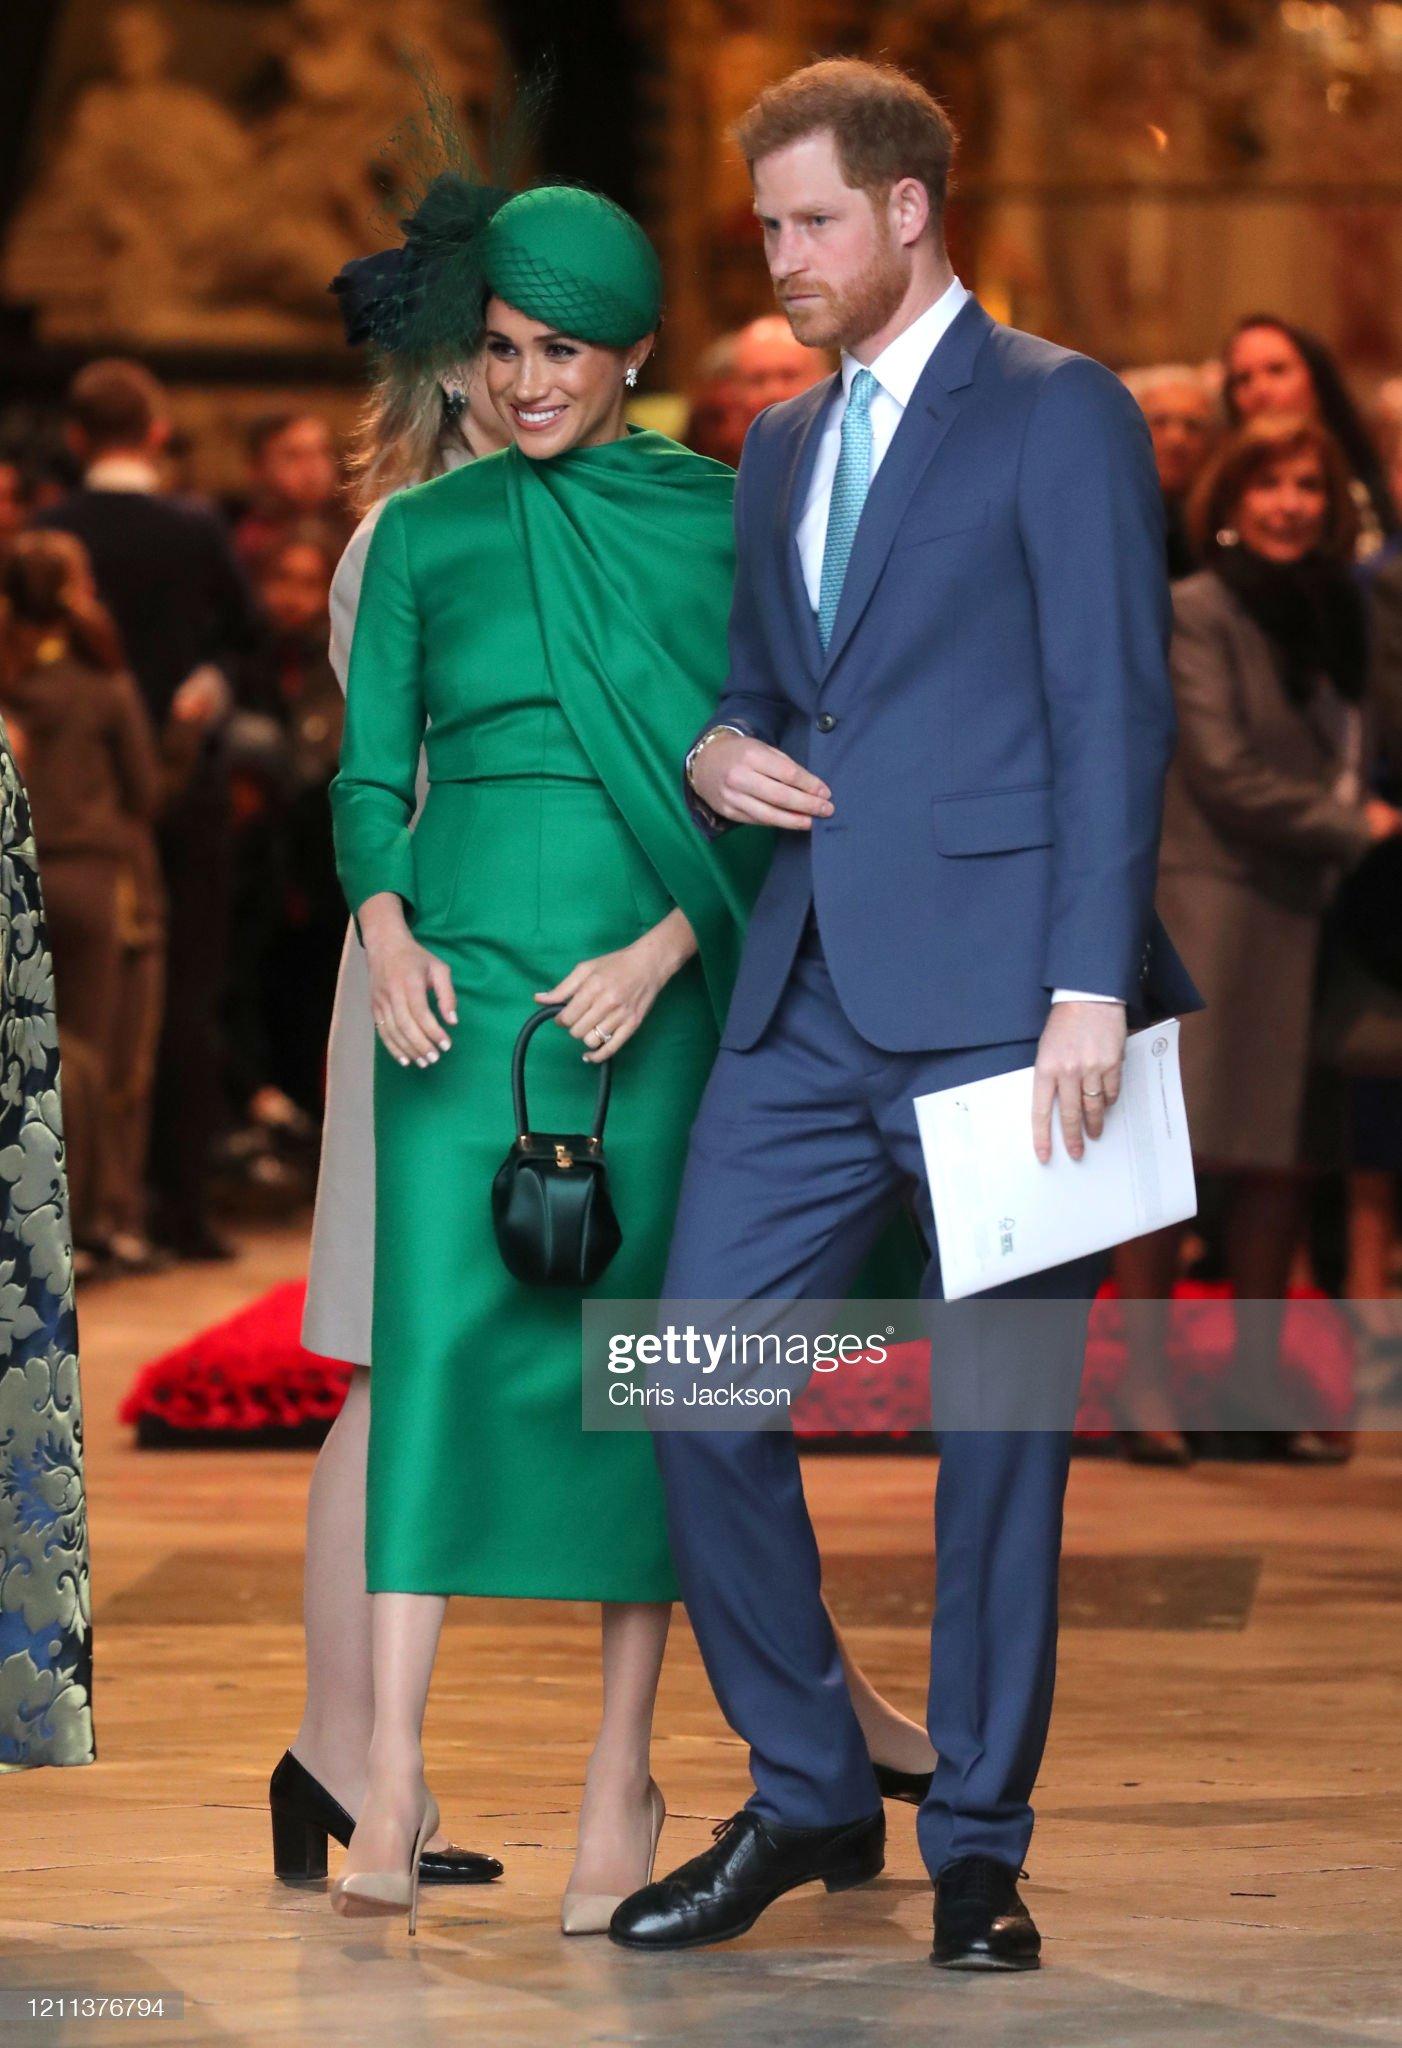 https://media.gettyimages.com/photos/meghan-duchess-of-sussex-and-prince-harry-duke-of-sussex-depart-the-picture-id1211376794?s=2048x2048